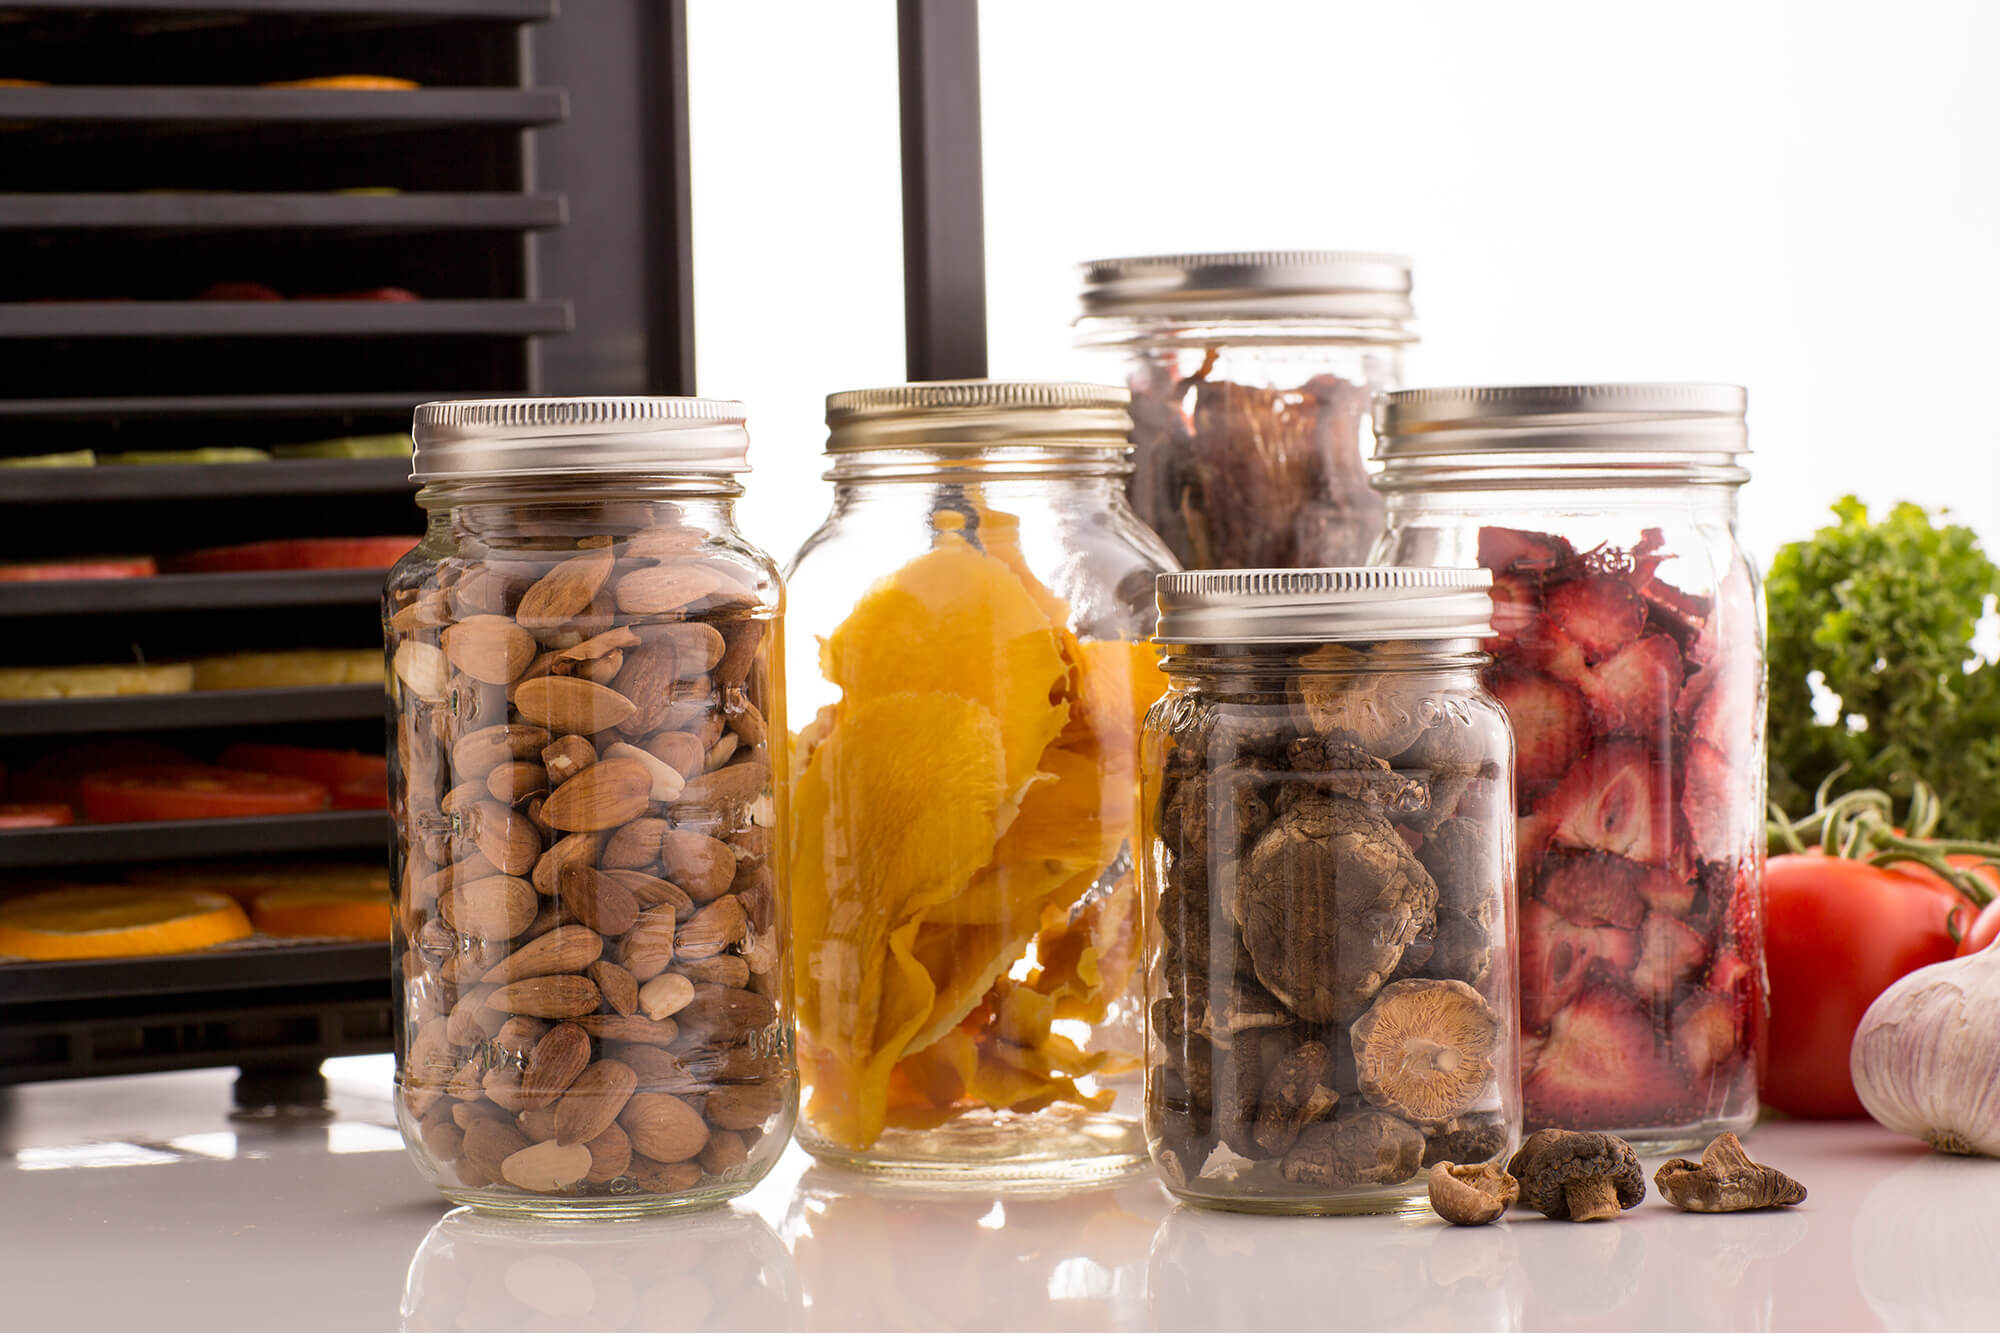 Glass jars filled with dried produce in front of an Excalibur RES10 dehydrator.